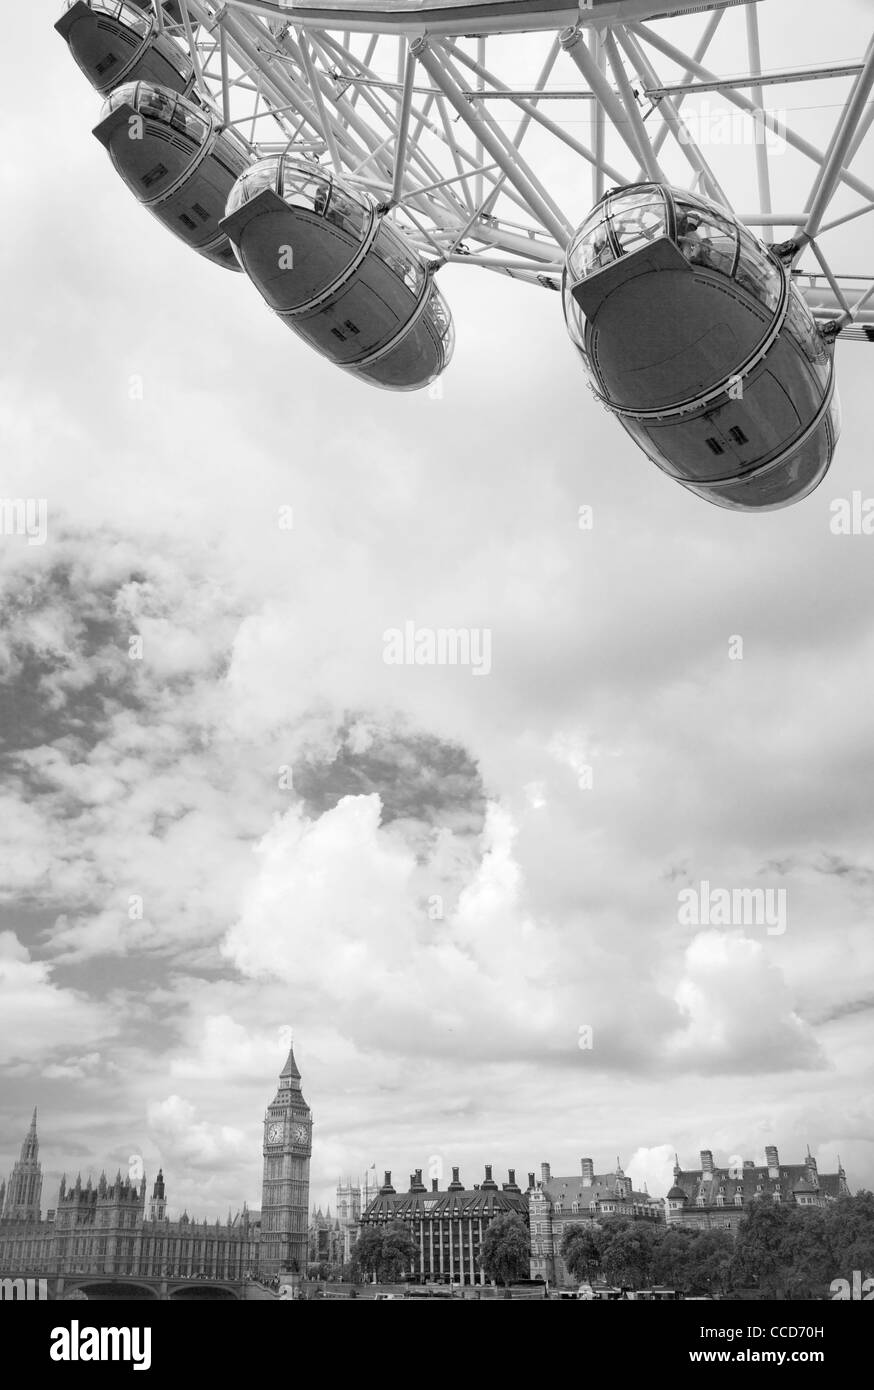 A detail of The London Eye ferris wheel and the north bank of the River Thames in the background, England. - Stock Image